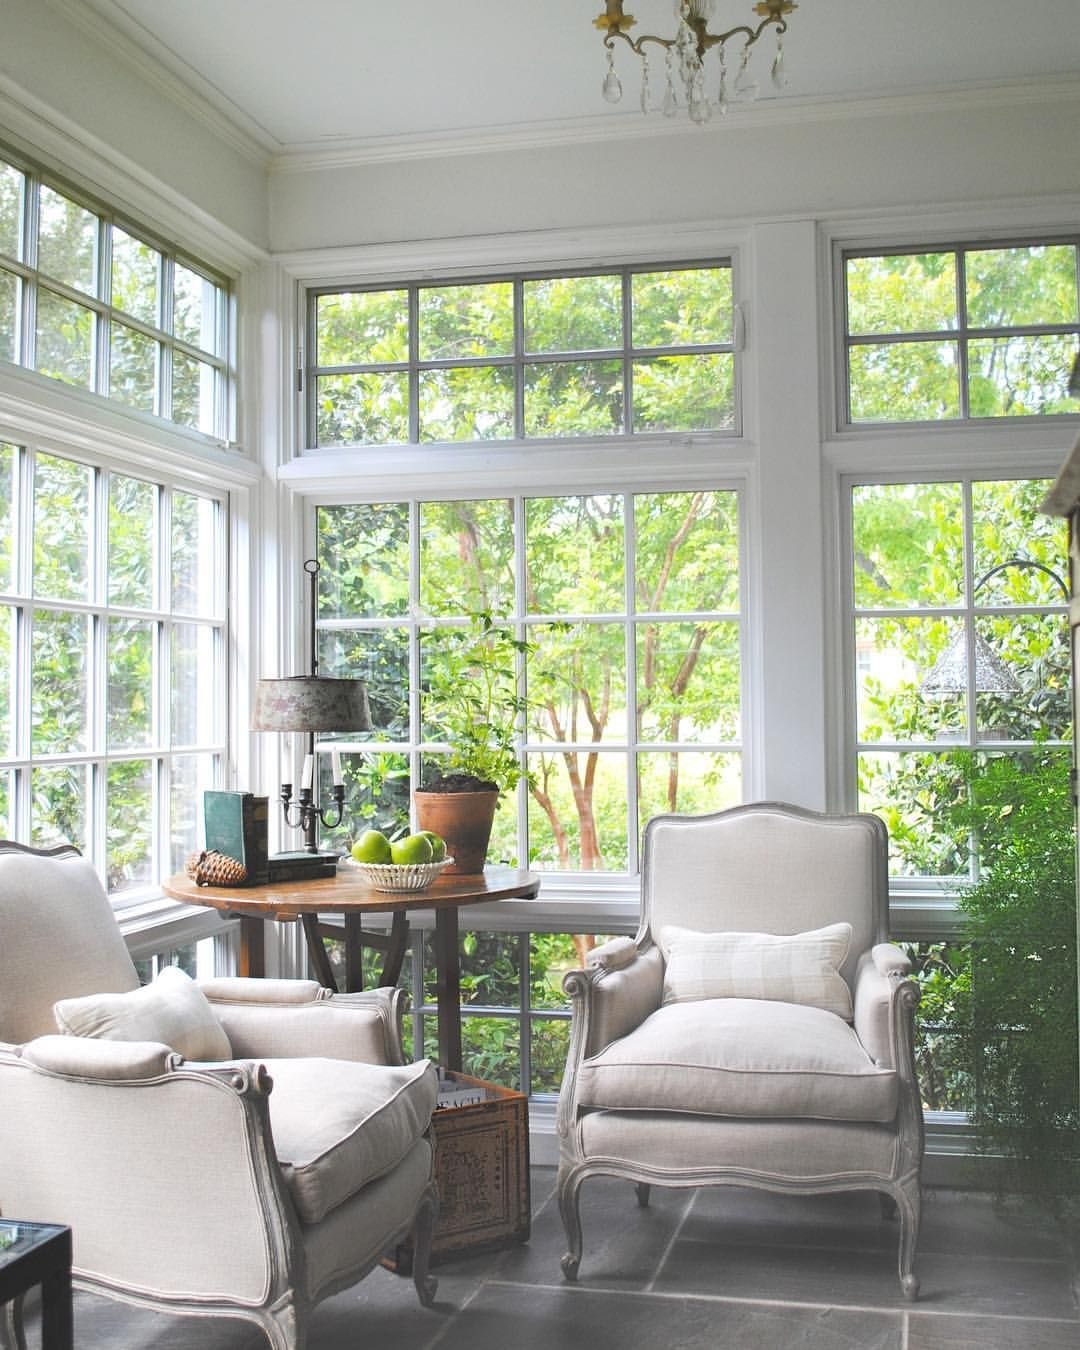 Window ideas for a sunroom  tone on tone loithai on instagram uca good friday to all this is